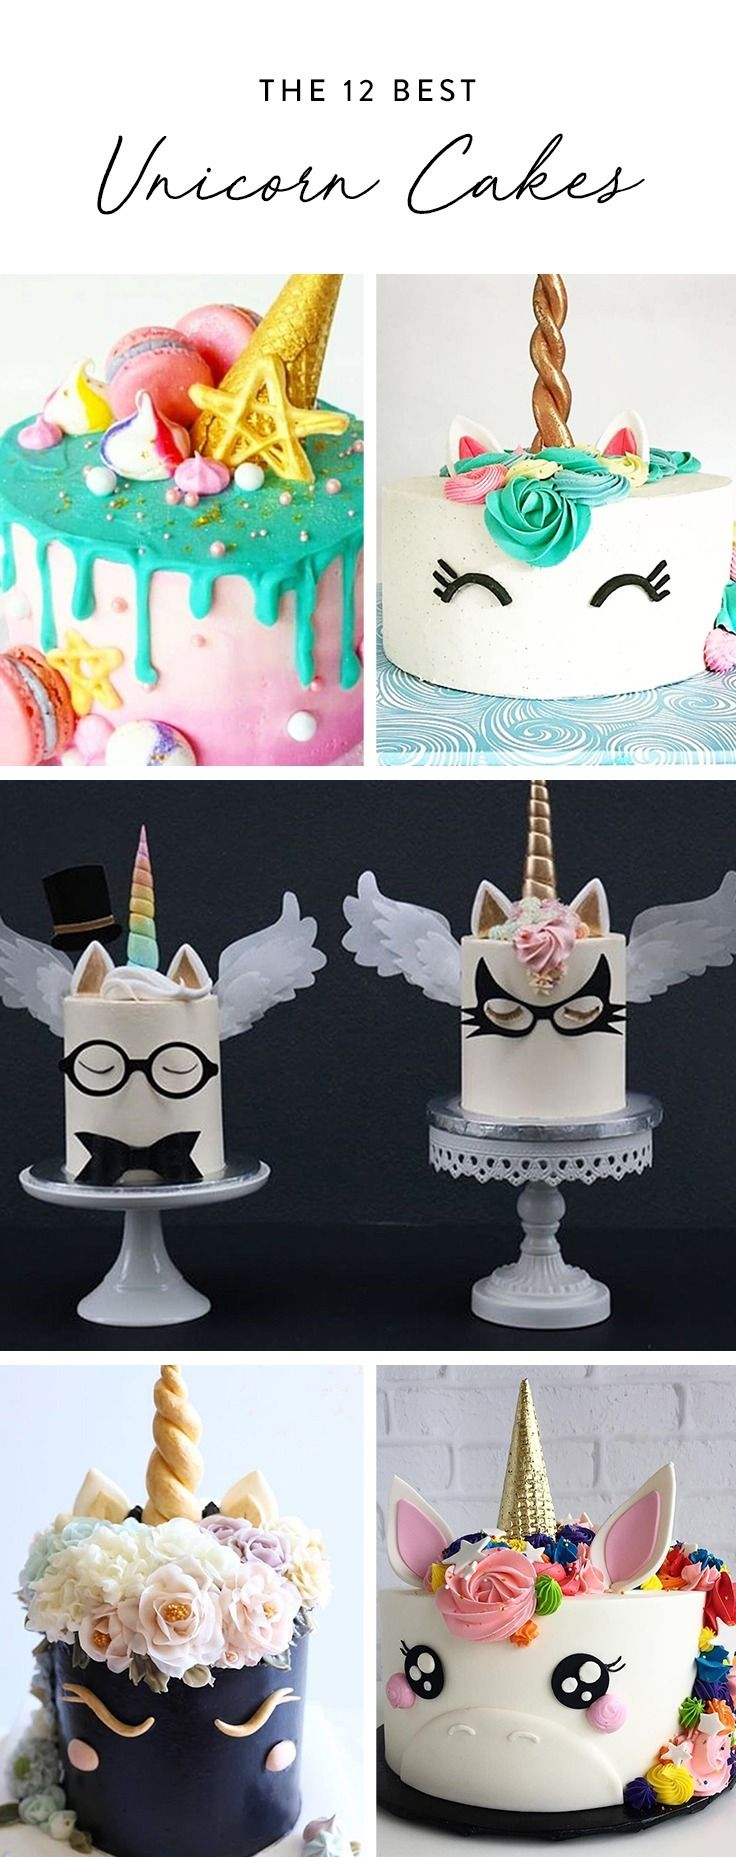 Nothing is more whimsical than an enchanted, edible horse. See for yourself with these 12 completely magical (and delicious) unicorn cakes.